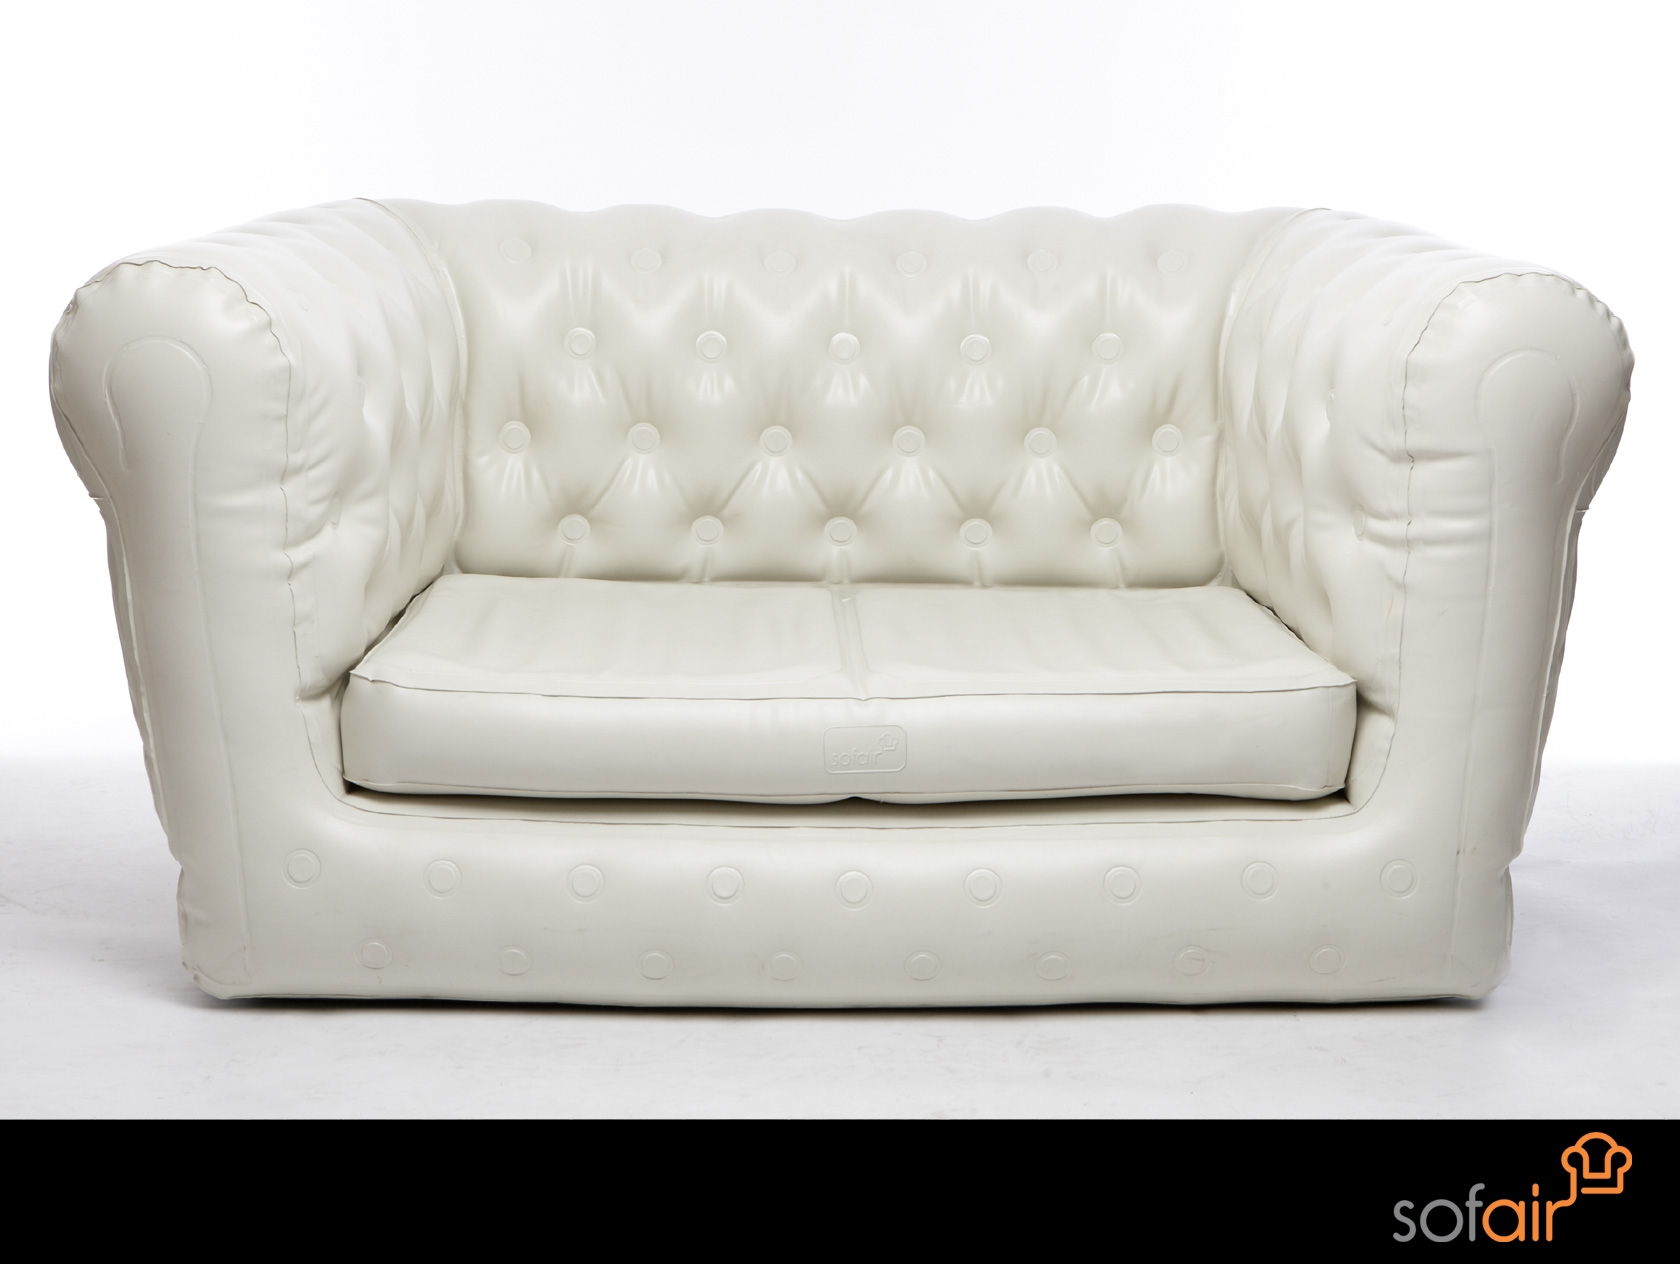 15 best collection of inflatable sofas and chairs sofa ideas for Air sofa prezzo